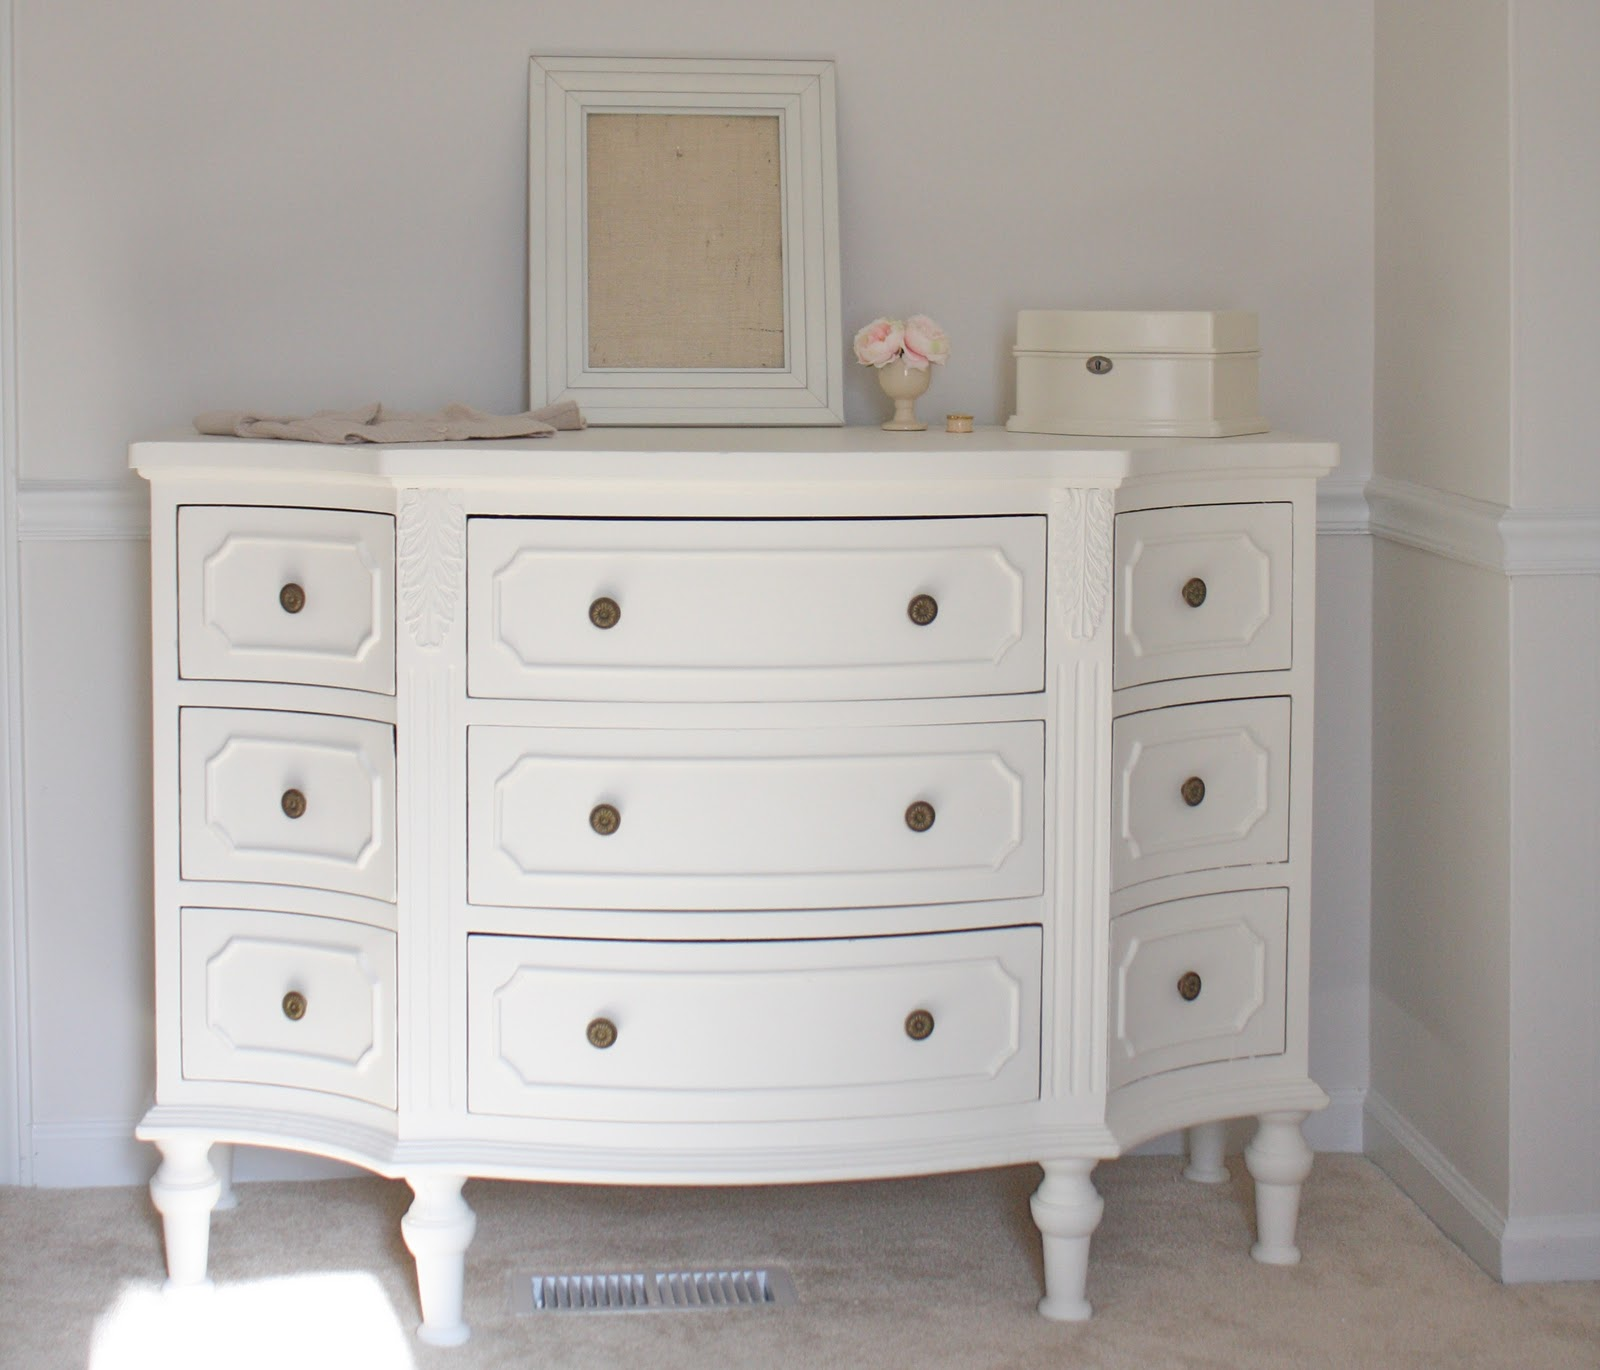 Adalyn 39 S Bedroom Furniture Refinished Julie Blanner